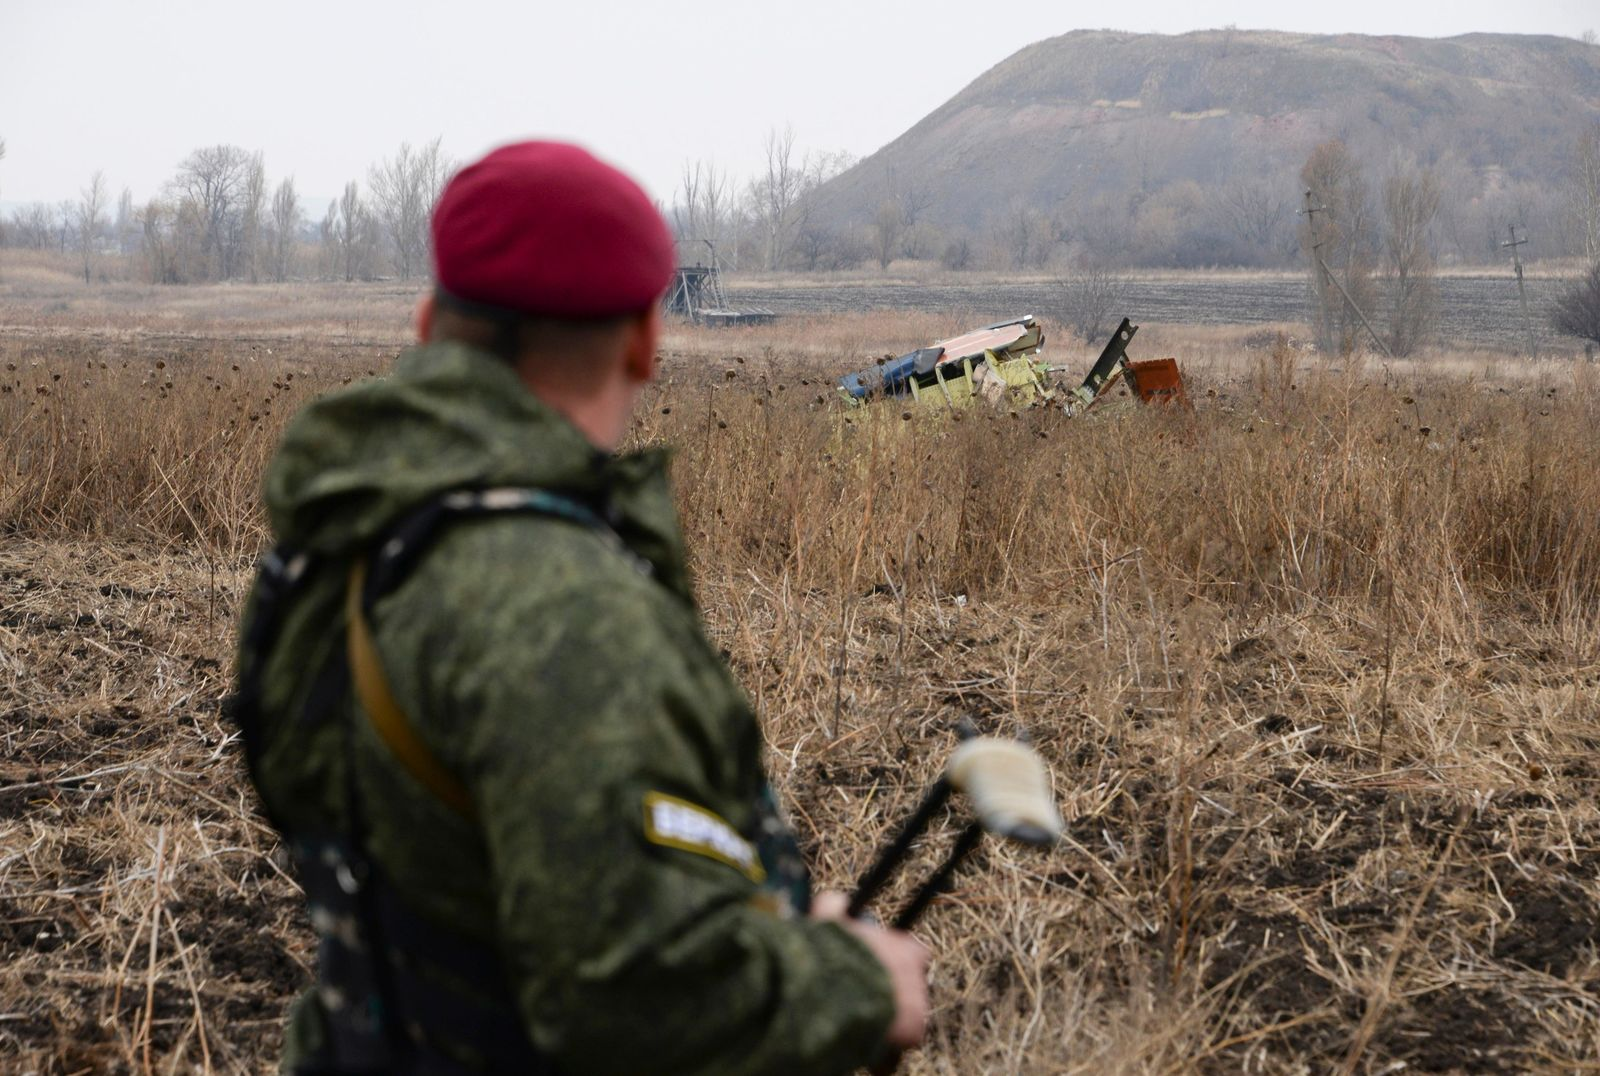 FILE - In this file photo dated Tuesday, Nov. 11, 2014, Pro-Russian rebel fighter guards one of the areas of the Malaysia Airlines Flight 17 plane crash in the village of Rossypne, Donetsk region, eastern Ukraine. (AP Photo/Mstyslan Chernov, FILE)